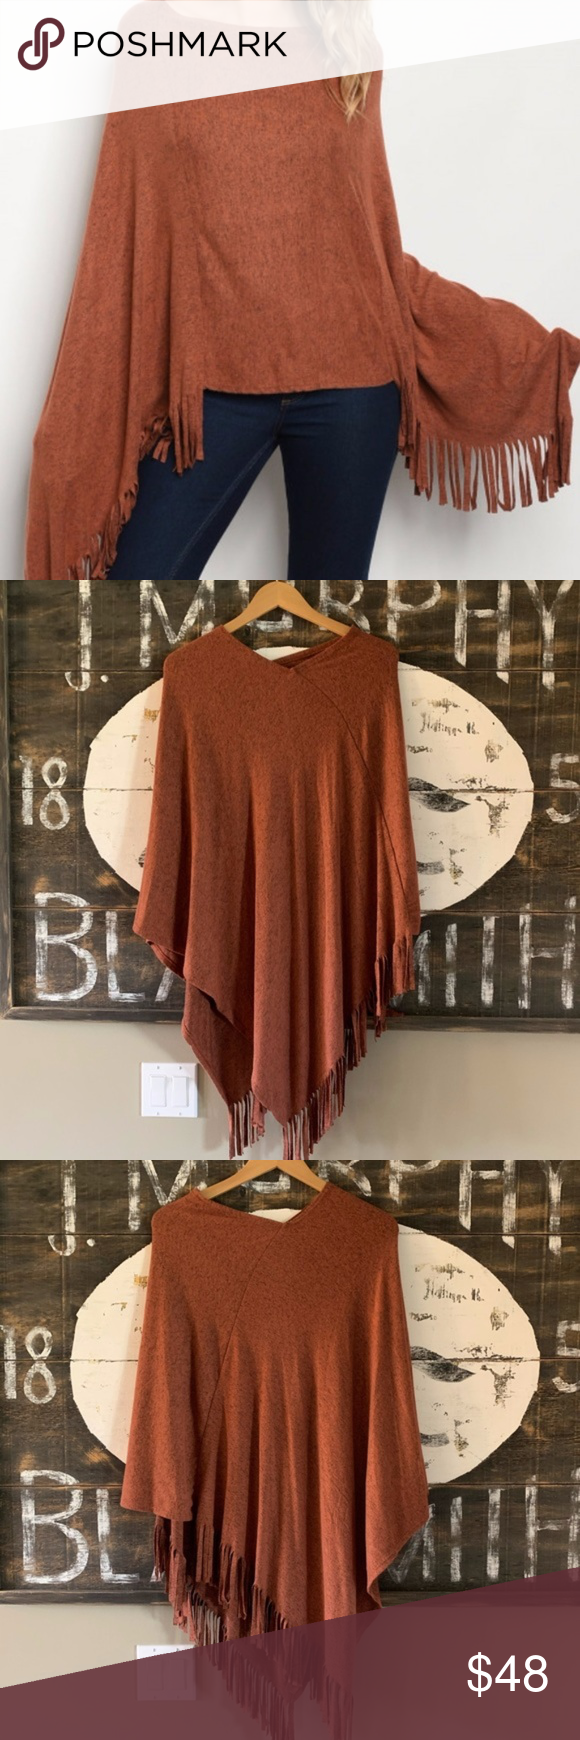 Fringe Poncho Sweater Super Soft and Cute! Fringe Sleeve Bohemian Poncho  Made in the USA!  Private Label  Fabric: Rayon Blend Brand new boutique item, but no tags! Sweaters #myposhpicks